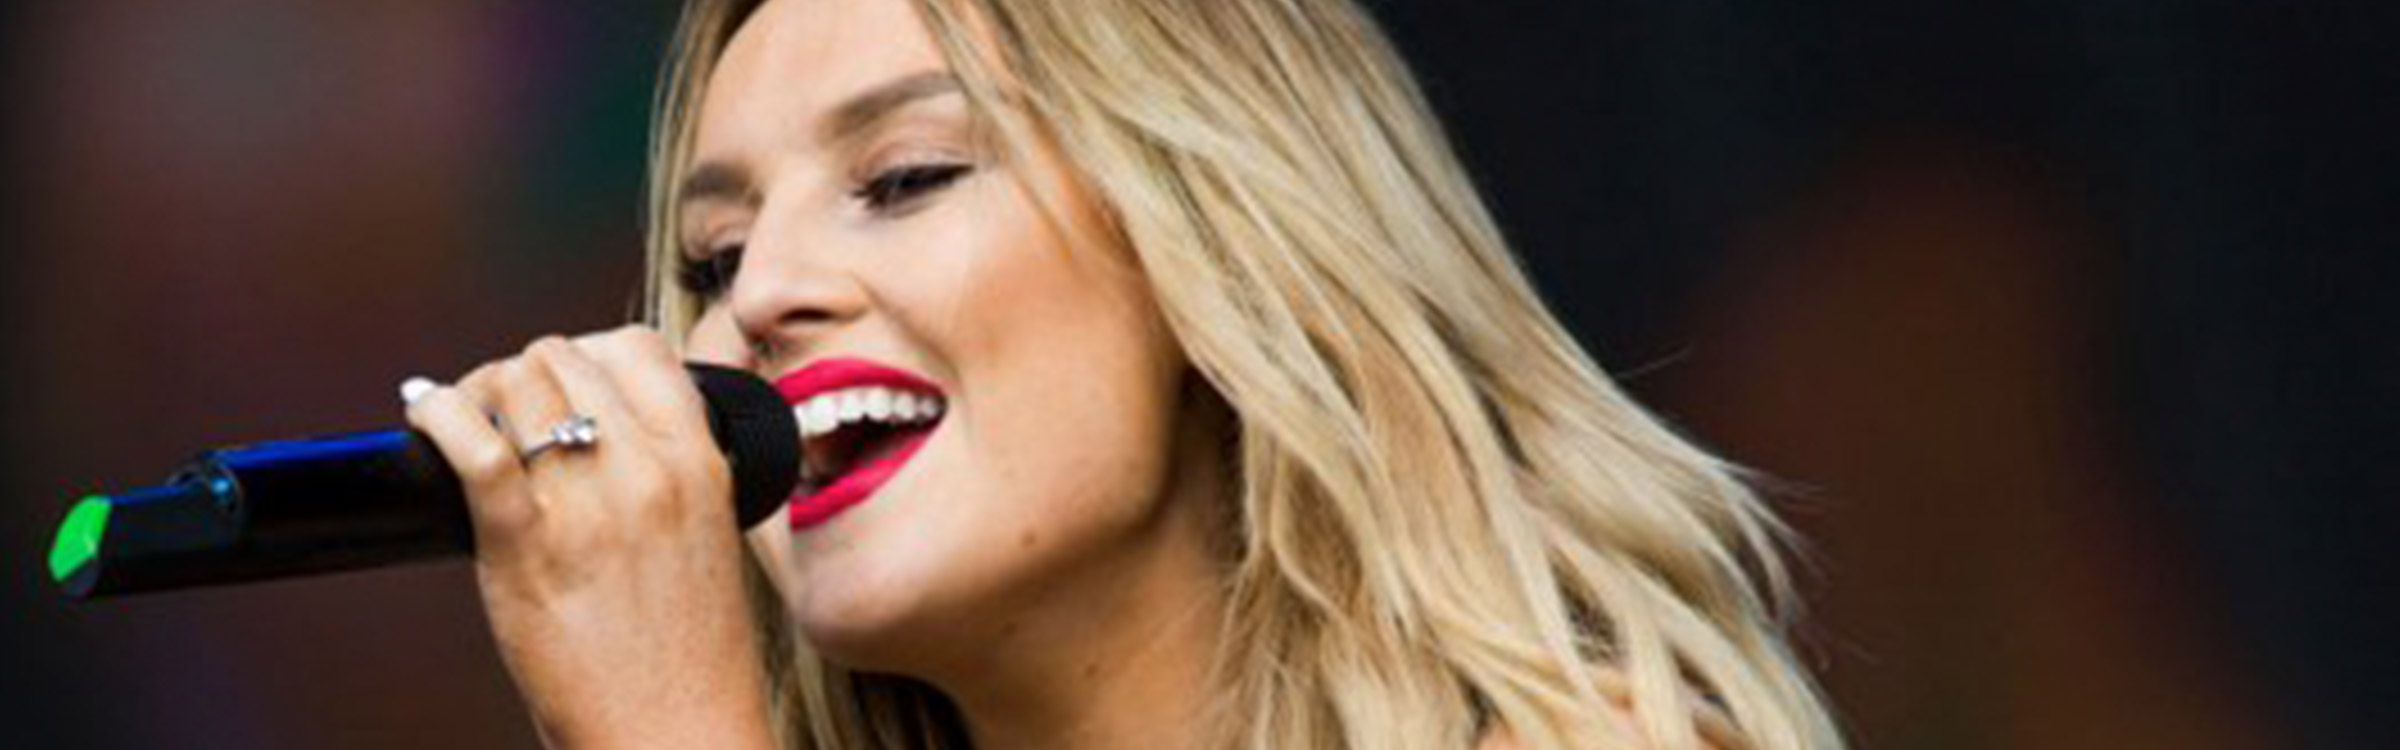 Perrie edwards header